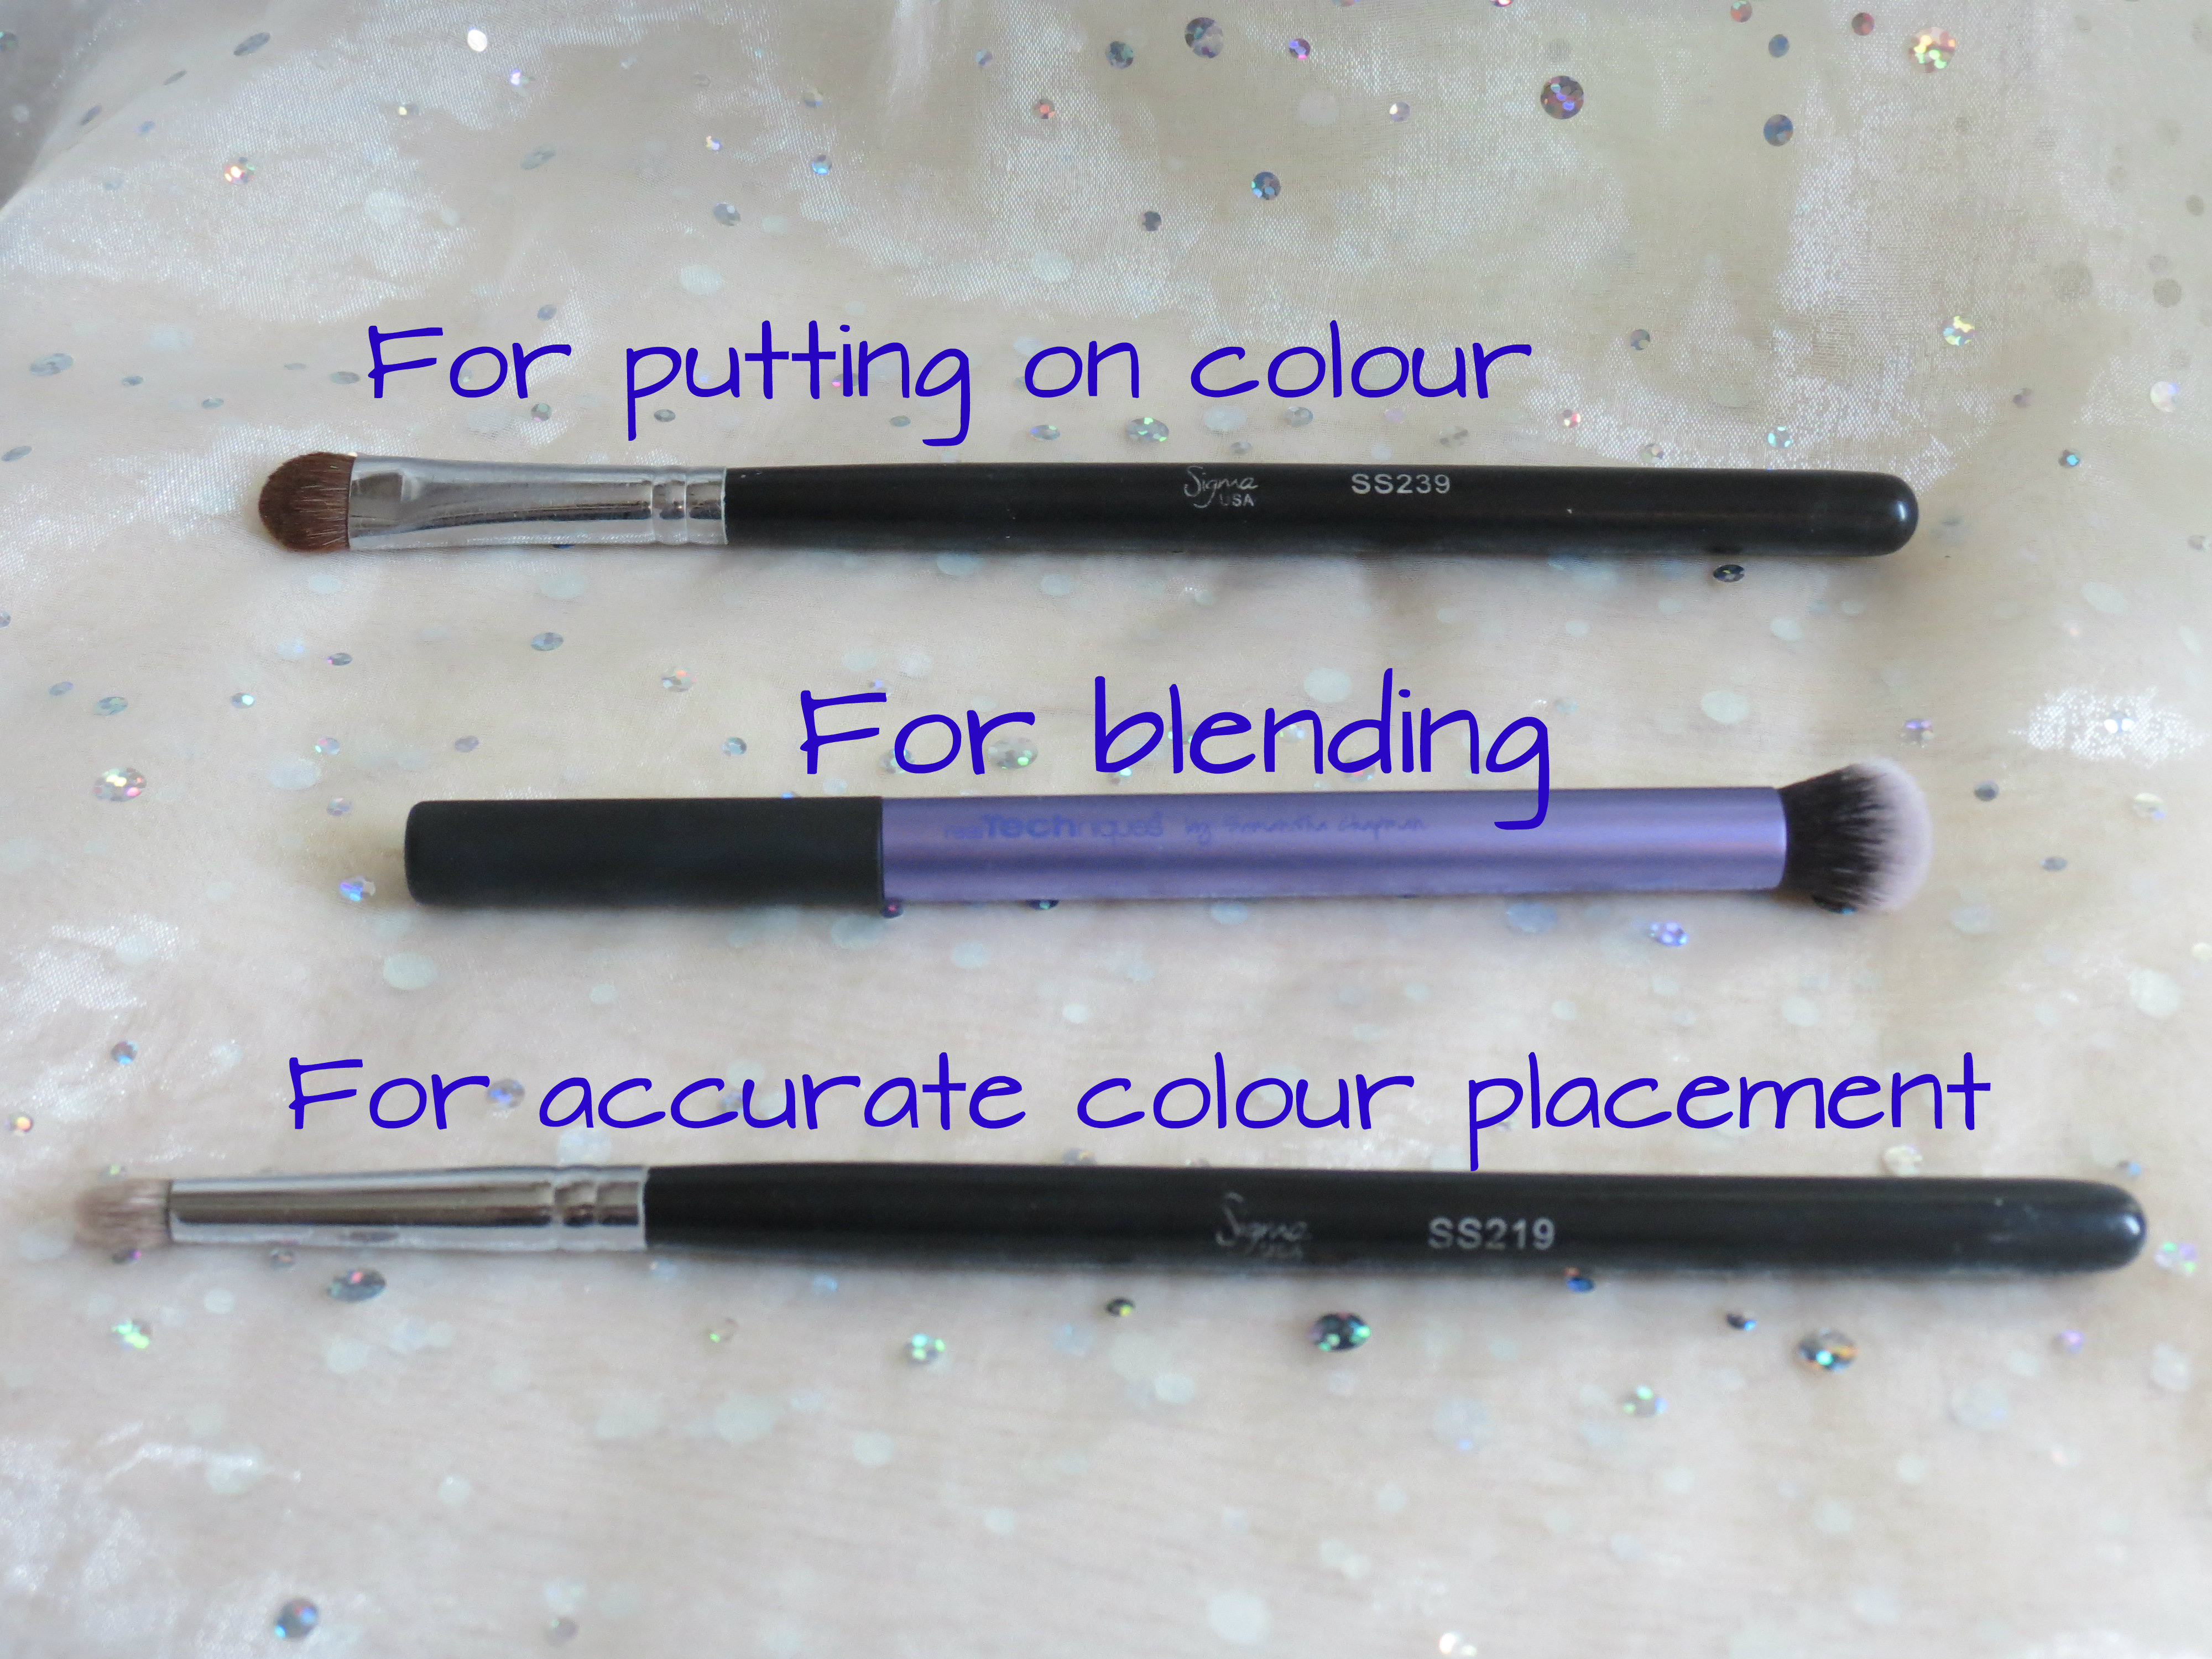 How To Use Eyeshadow Blending Brushes - The Best Makeup Tips and ...